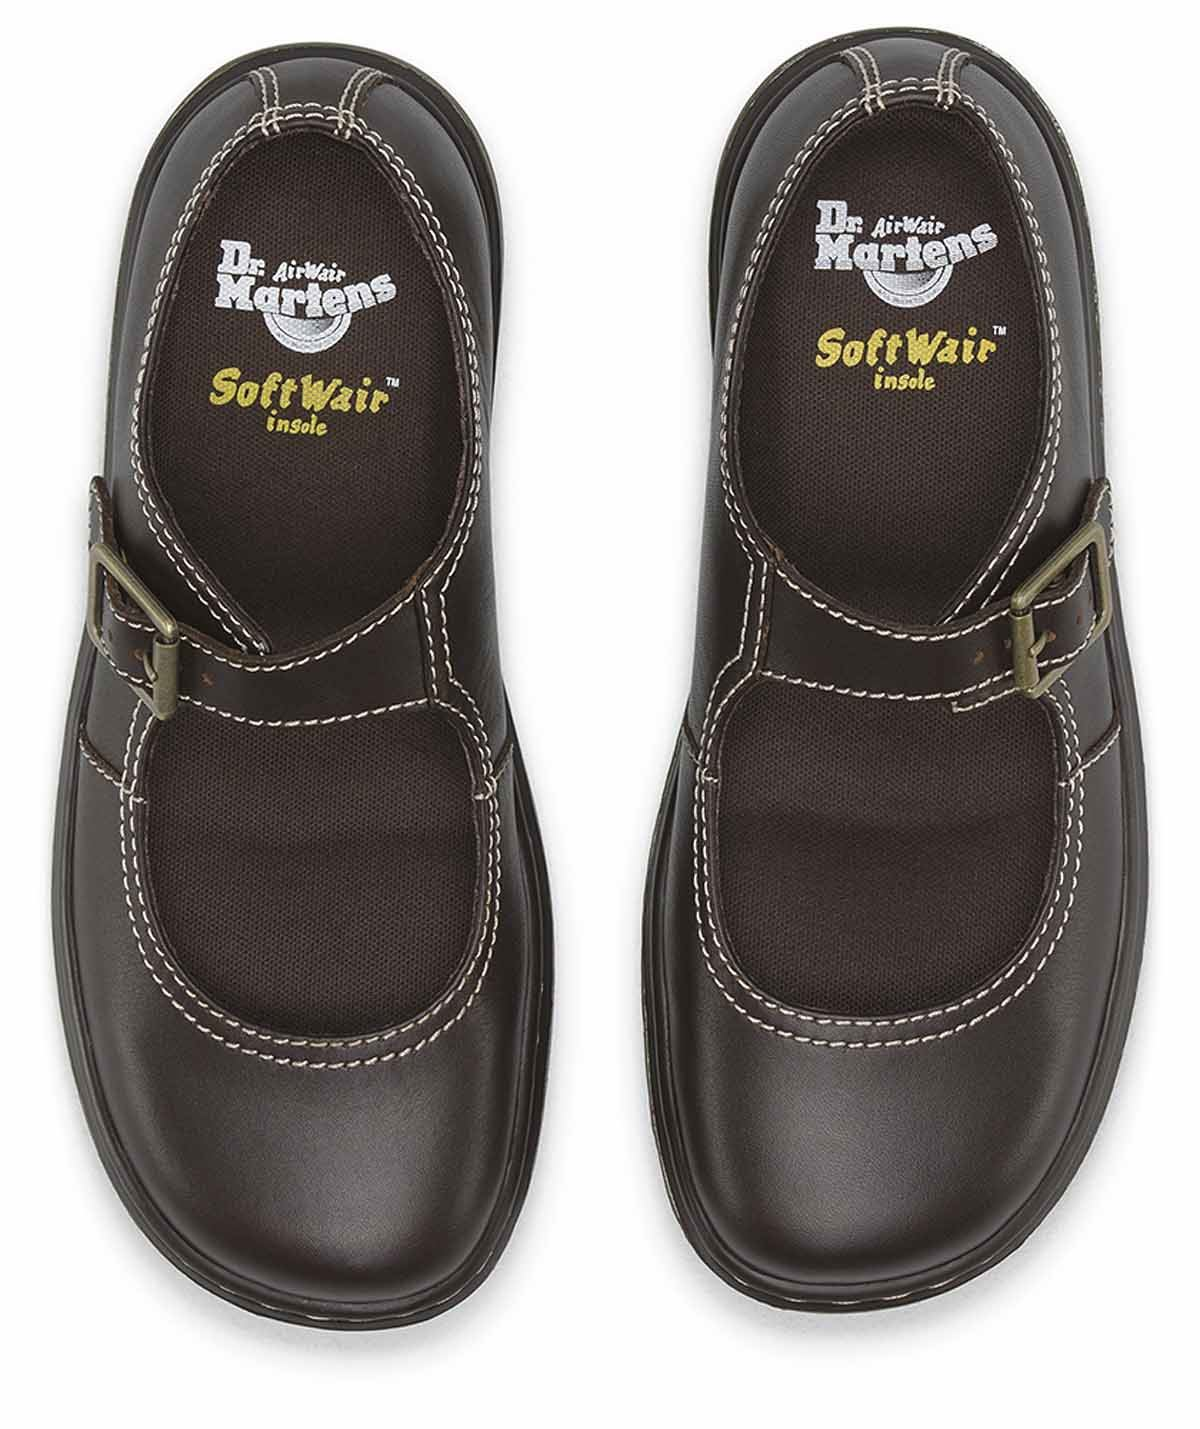 Dr Martens Ladies Kara Mary Jane Danio Super Soft Leather Leather Leather shoes 44deee